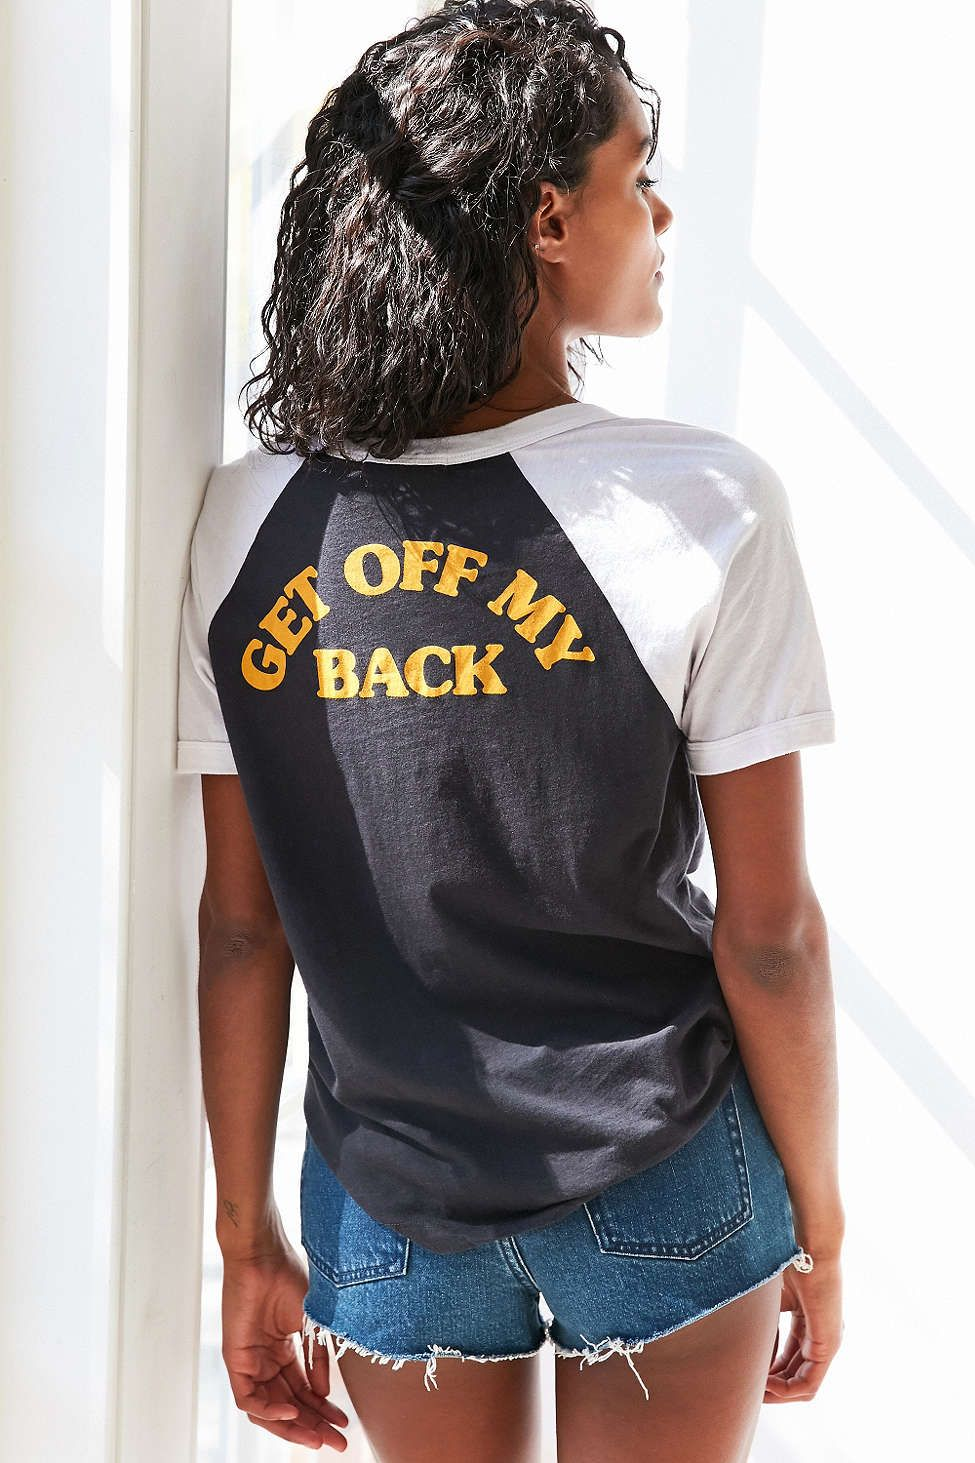 Truly Madly Deeply Get Off My Back Ringer Tee - Urban Outfitters